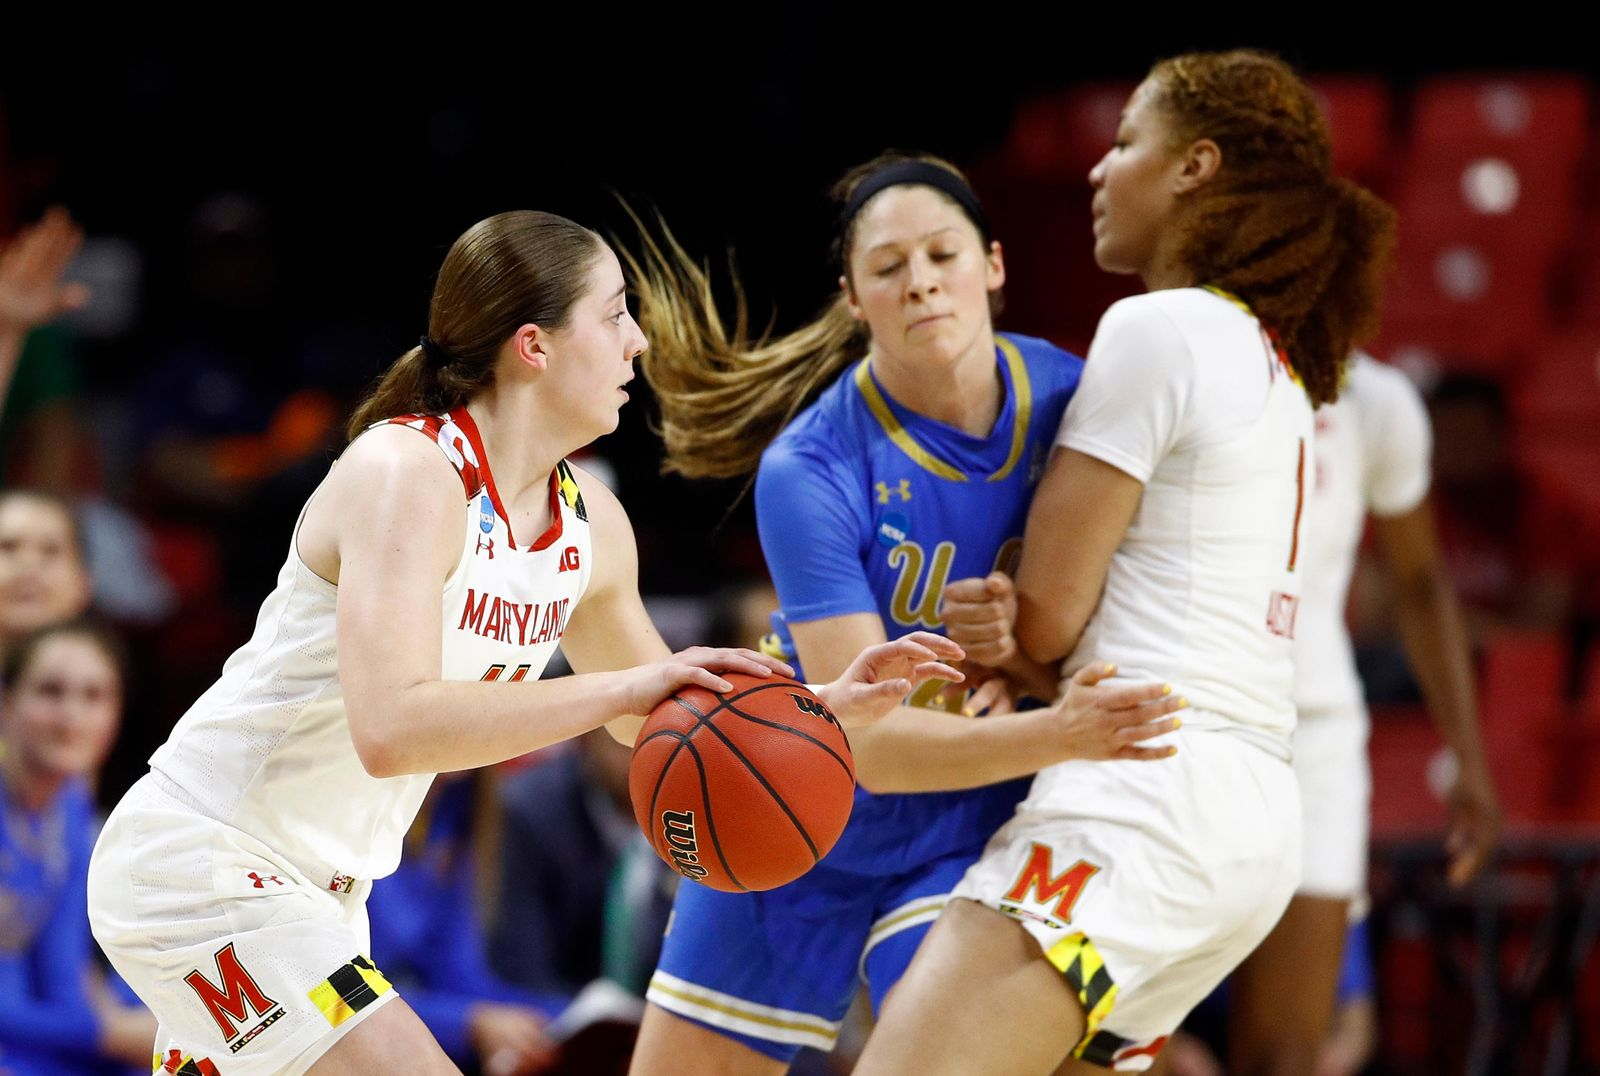 Maryland guard Taylor Mikesell, left, drives past UCLA guard Lindsey Corsaro as Corsaro is screened by Maryland forward Shakira Austin during the first half of a second-round game in the NCAA women's college basketball tournament, Monday, March 25, 2019, in College Park, Md. (AP Photo/Patrick Semansky)